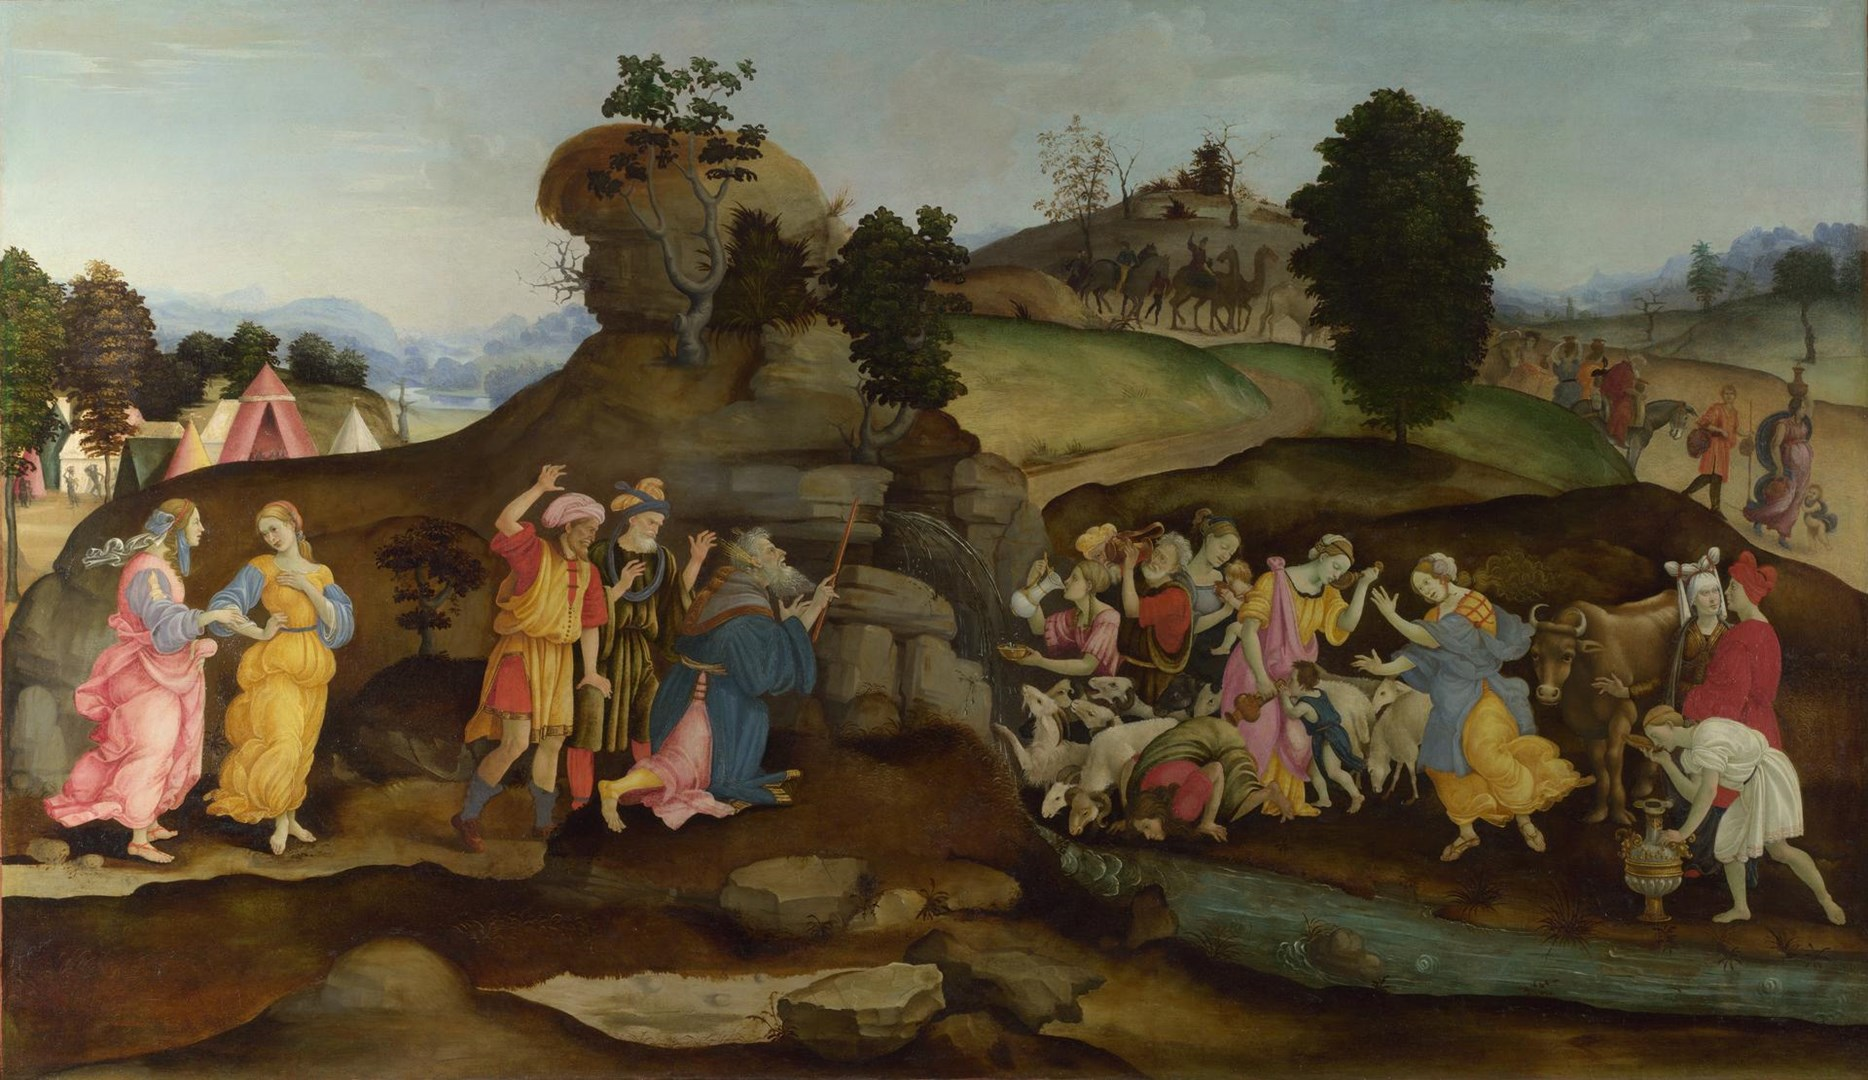 Moses brings forth Water out of the Rock by Follower of Filippino Lippi